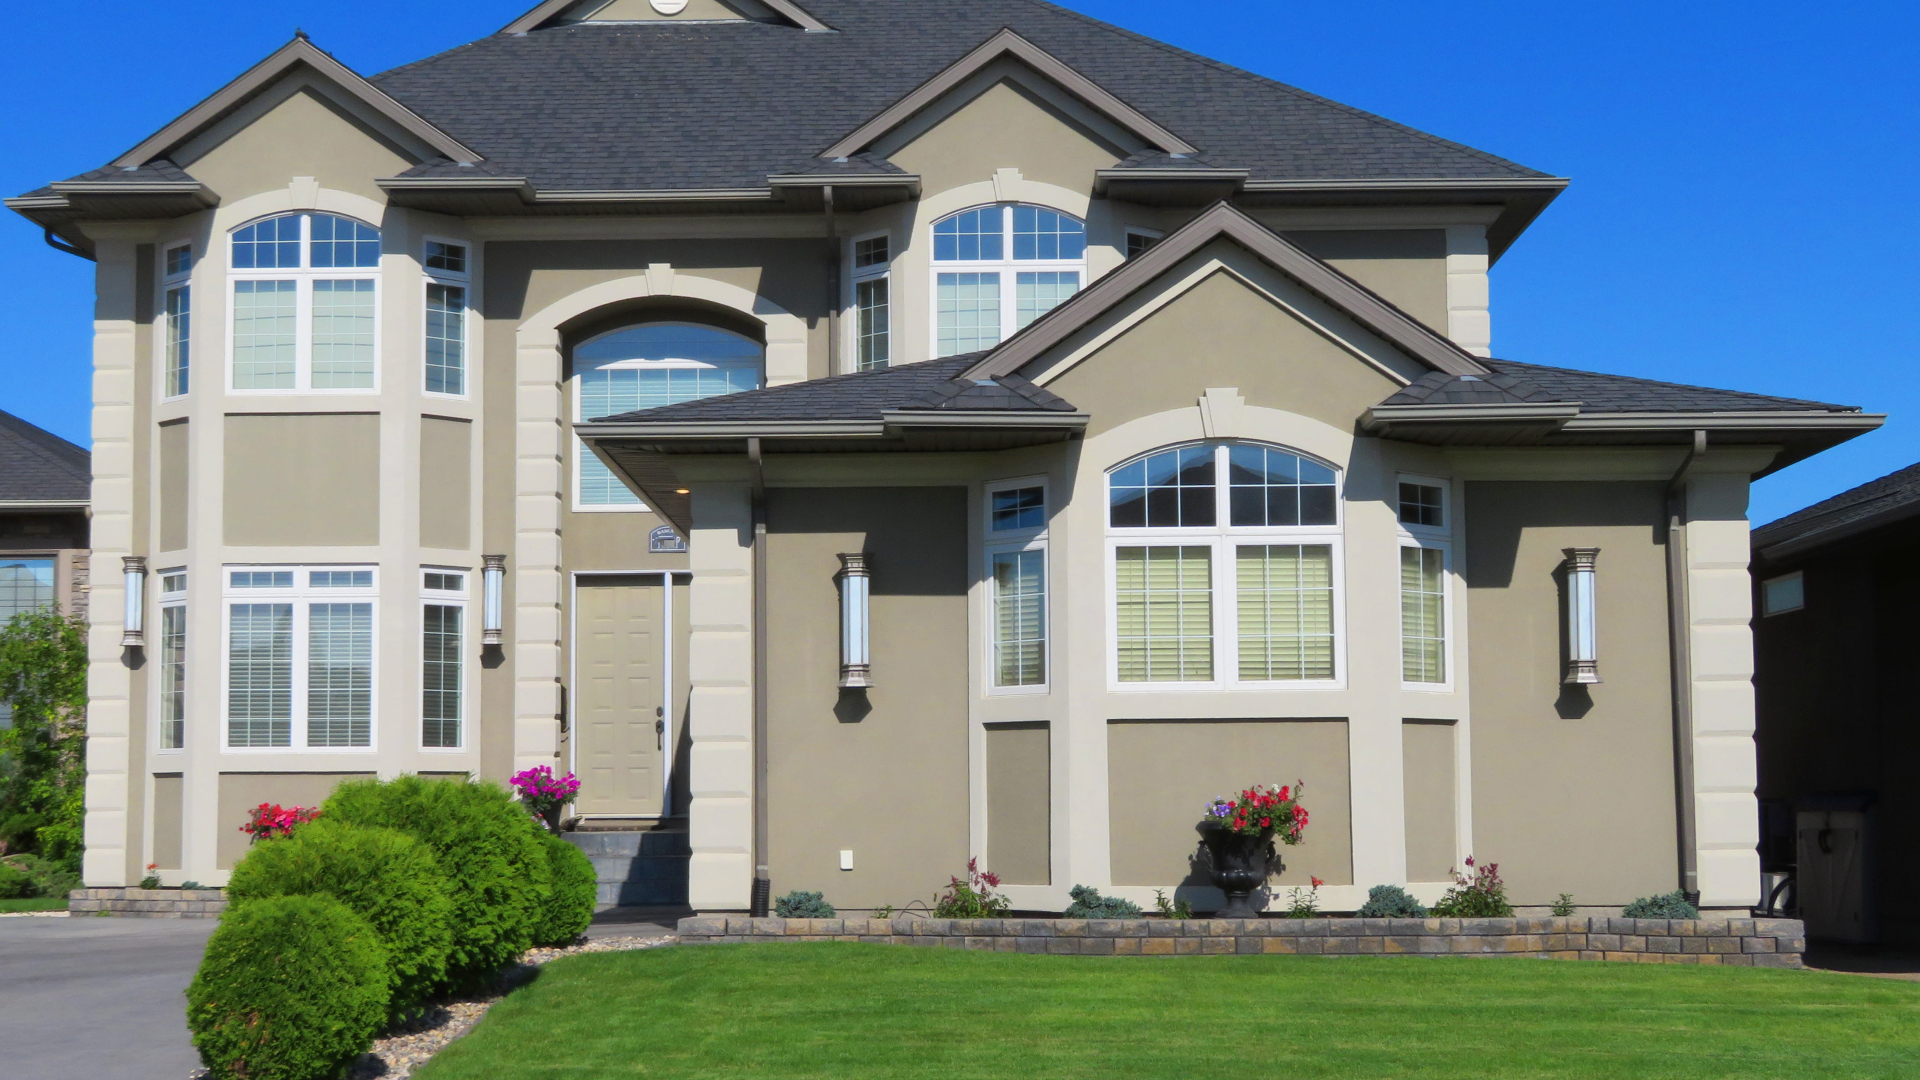 realtor images free